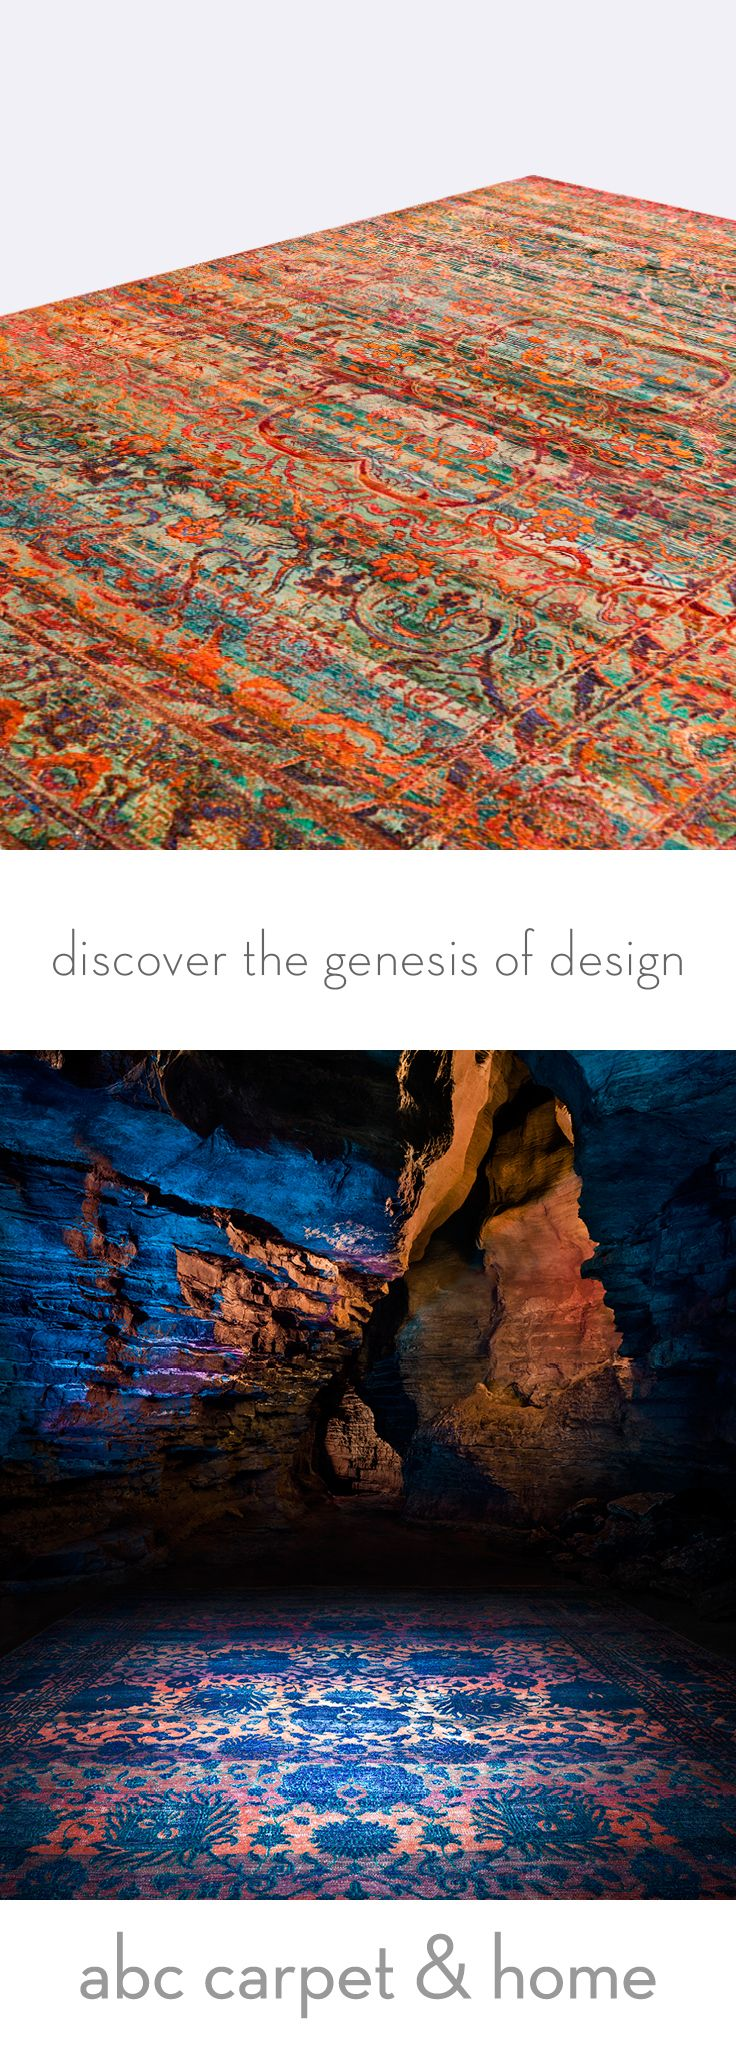 Abc Creation en ce qui concerne introducing the alchemy collection - discover the genesis of design